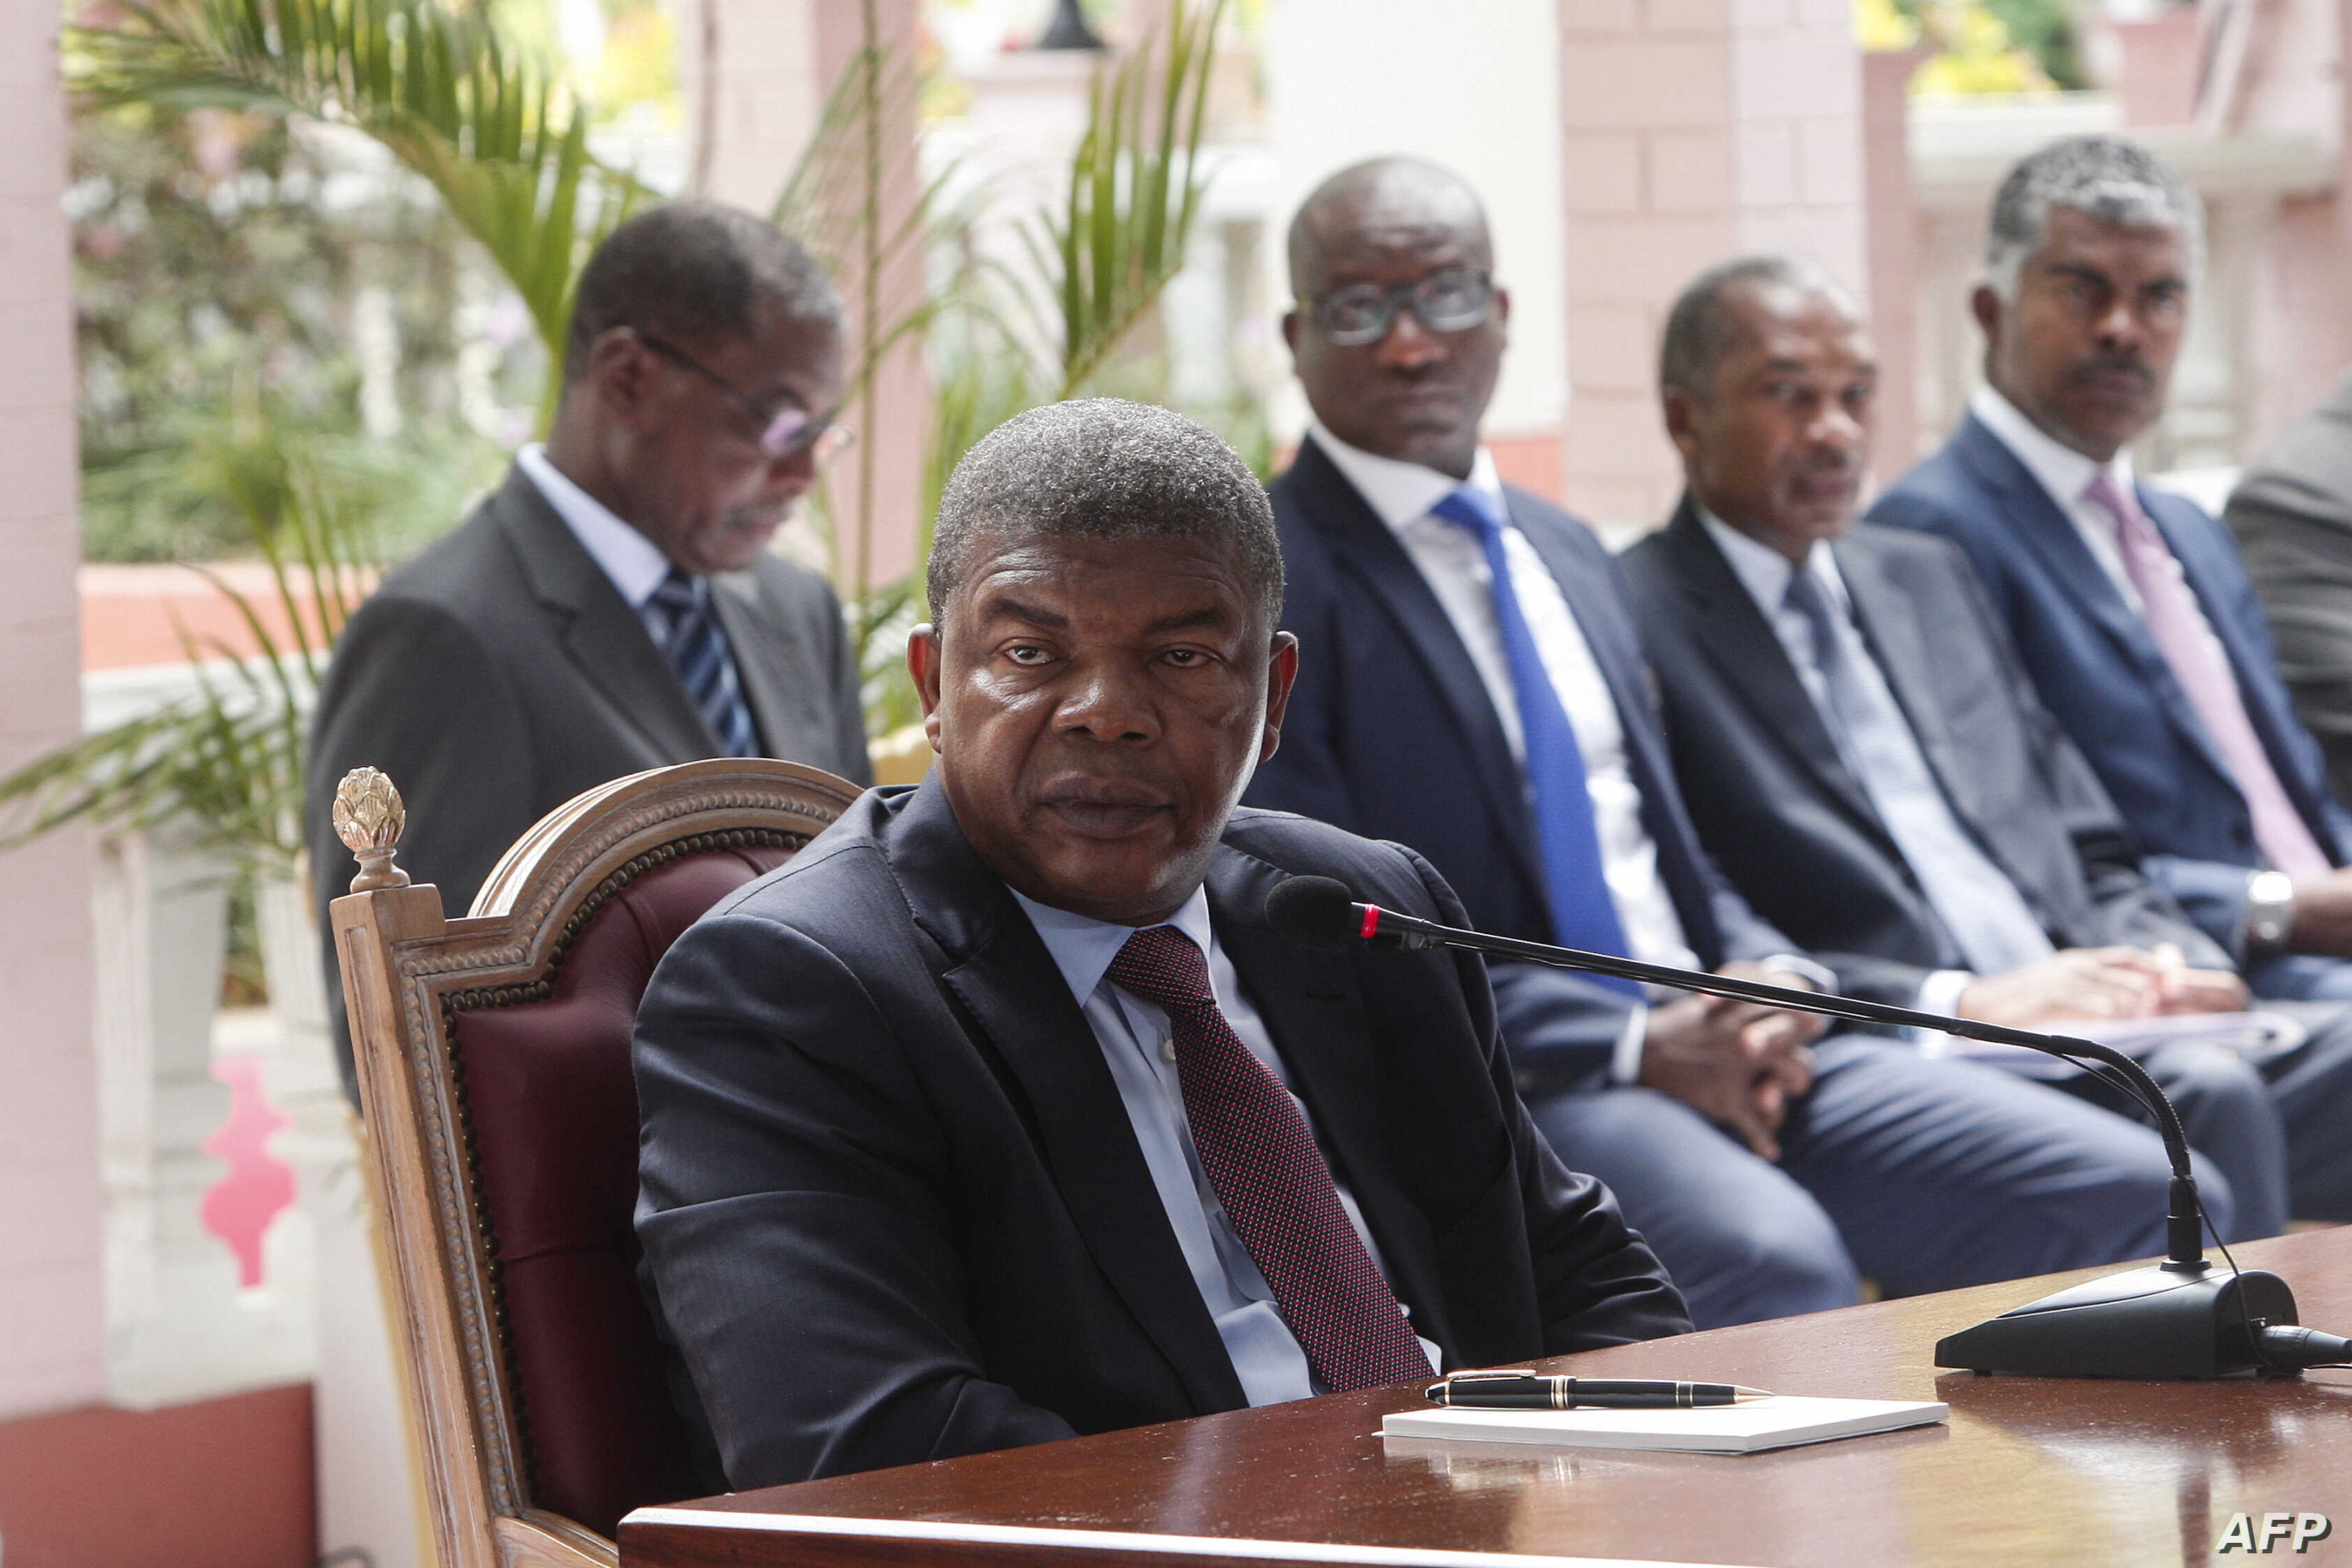 Angolan President Joao Lourenco gives his first press conference after his election on Jan. 8, 2018 to mark his first 100 days in office at the Presidential Palace in Luanda.